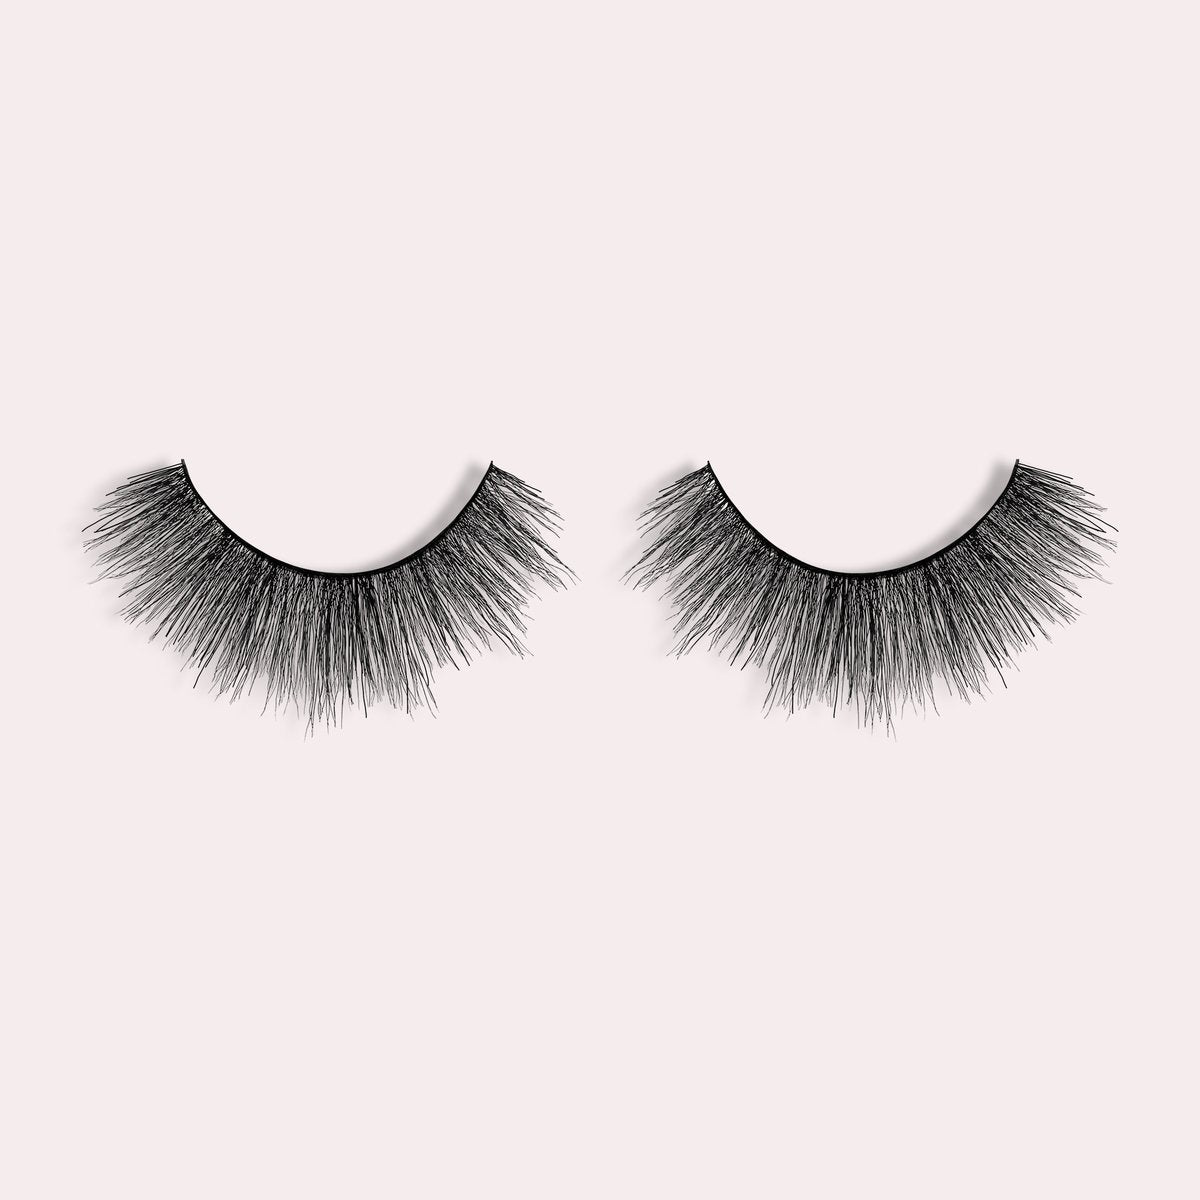 Faux Mink 3D STRIP LASH - Chelsea - LBLA COSMETICS & CO.-LashBox LA Australia